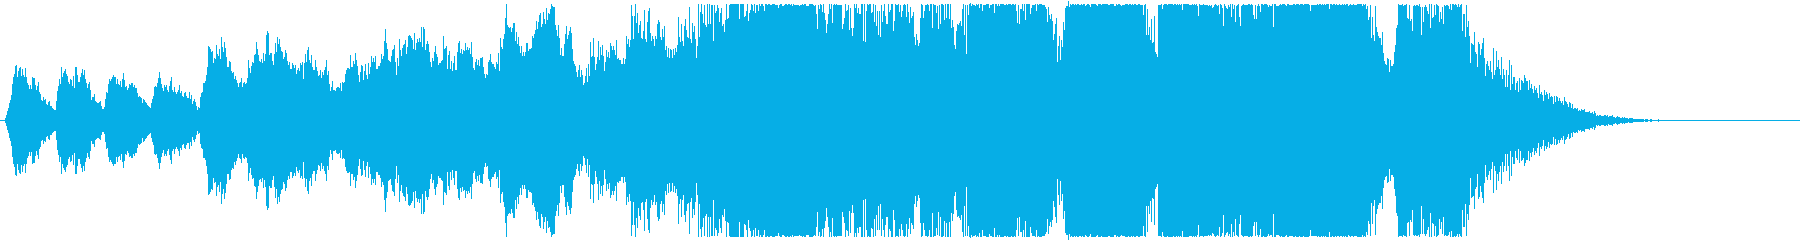 Fanfare with a gorgeous atmosphere!'s reproduced waveform